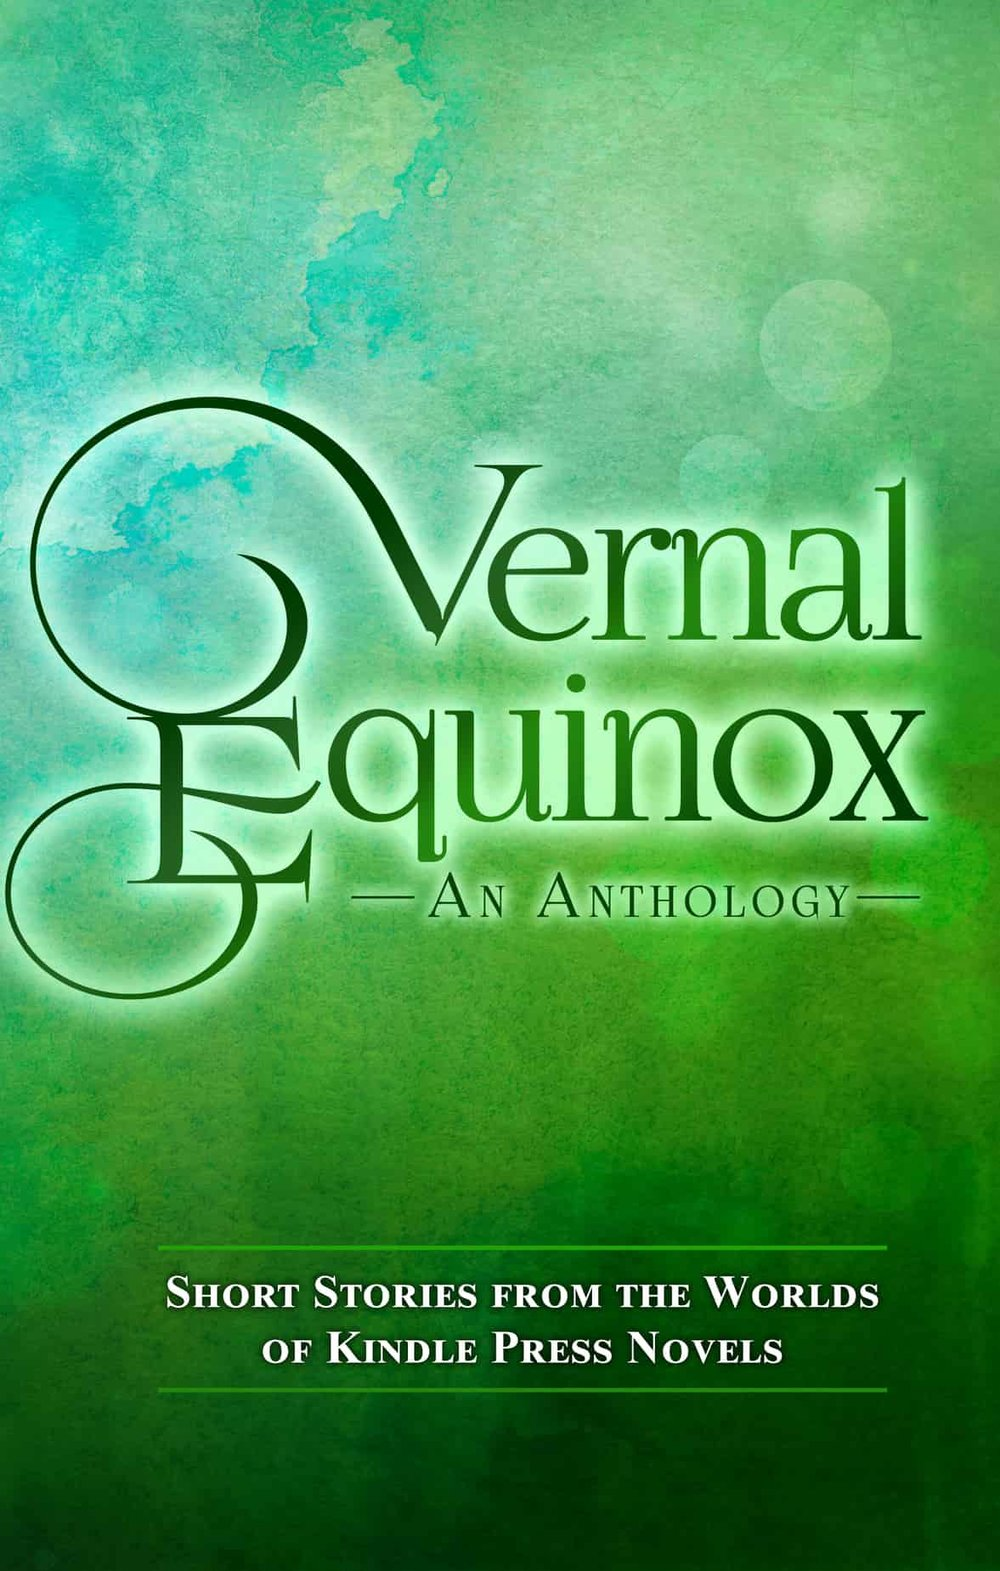 Vernal Equinox Landing Page E-Book Cover